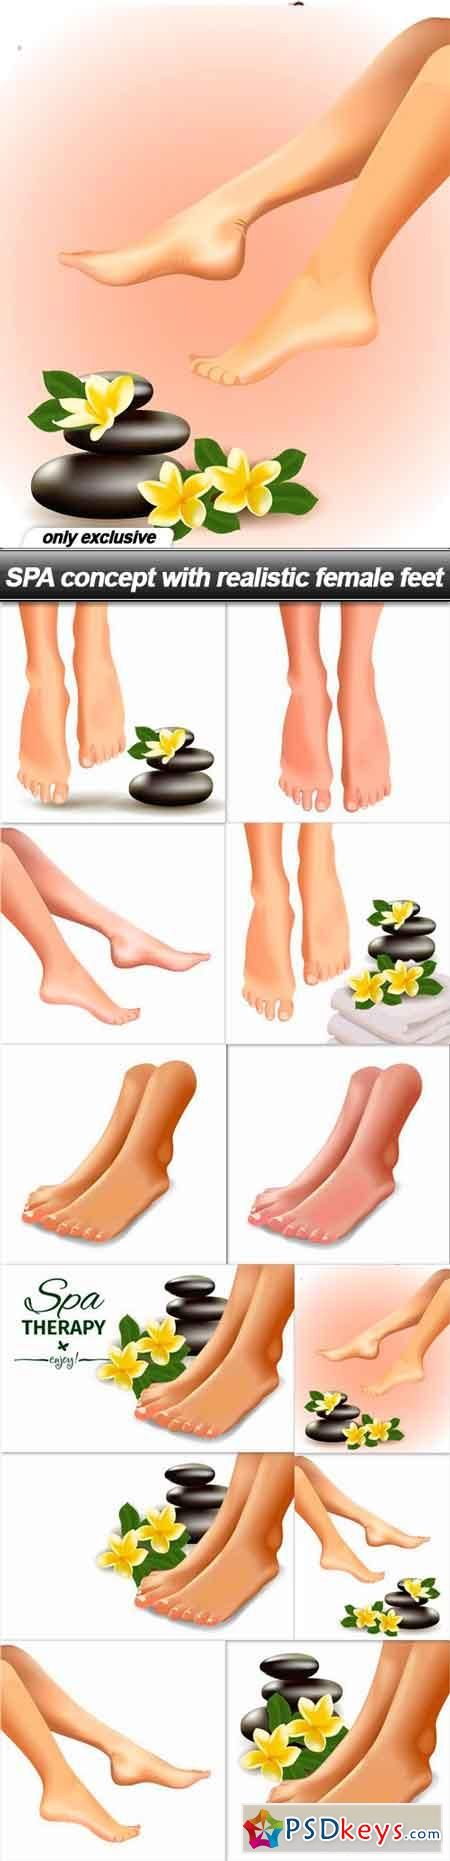 SPA concept with realistic female feet - 12 EPS